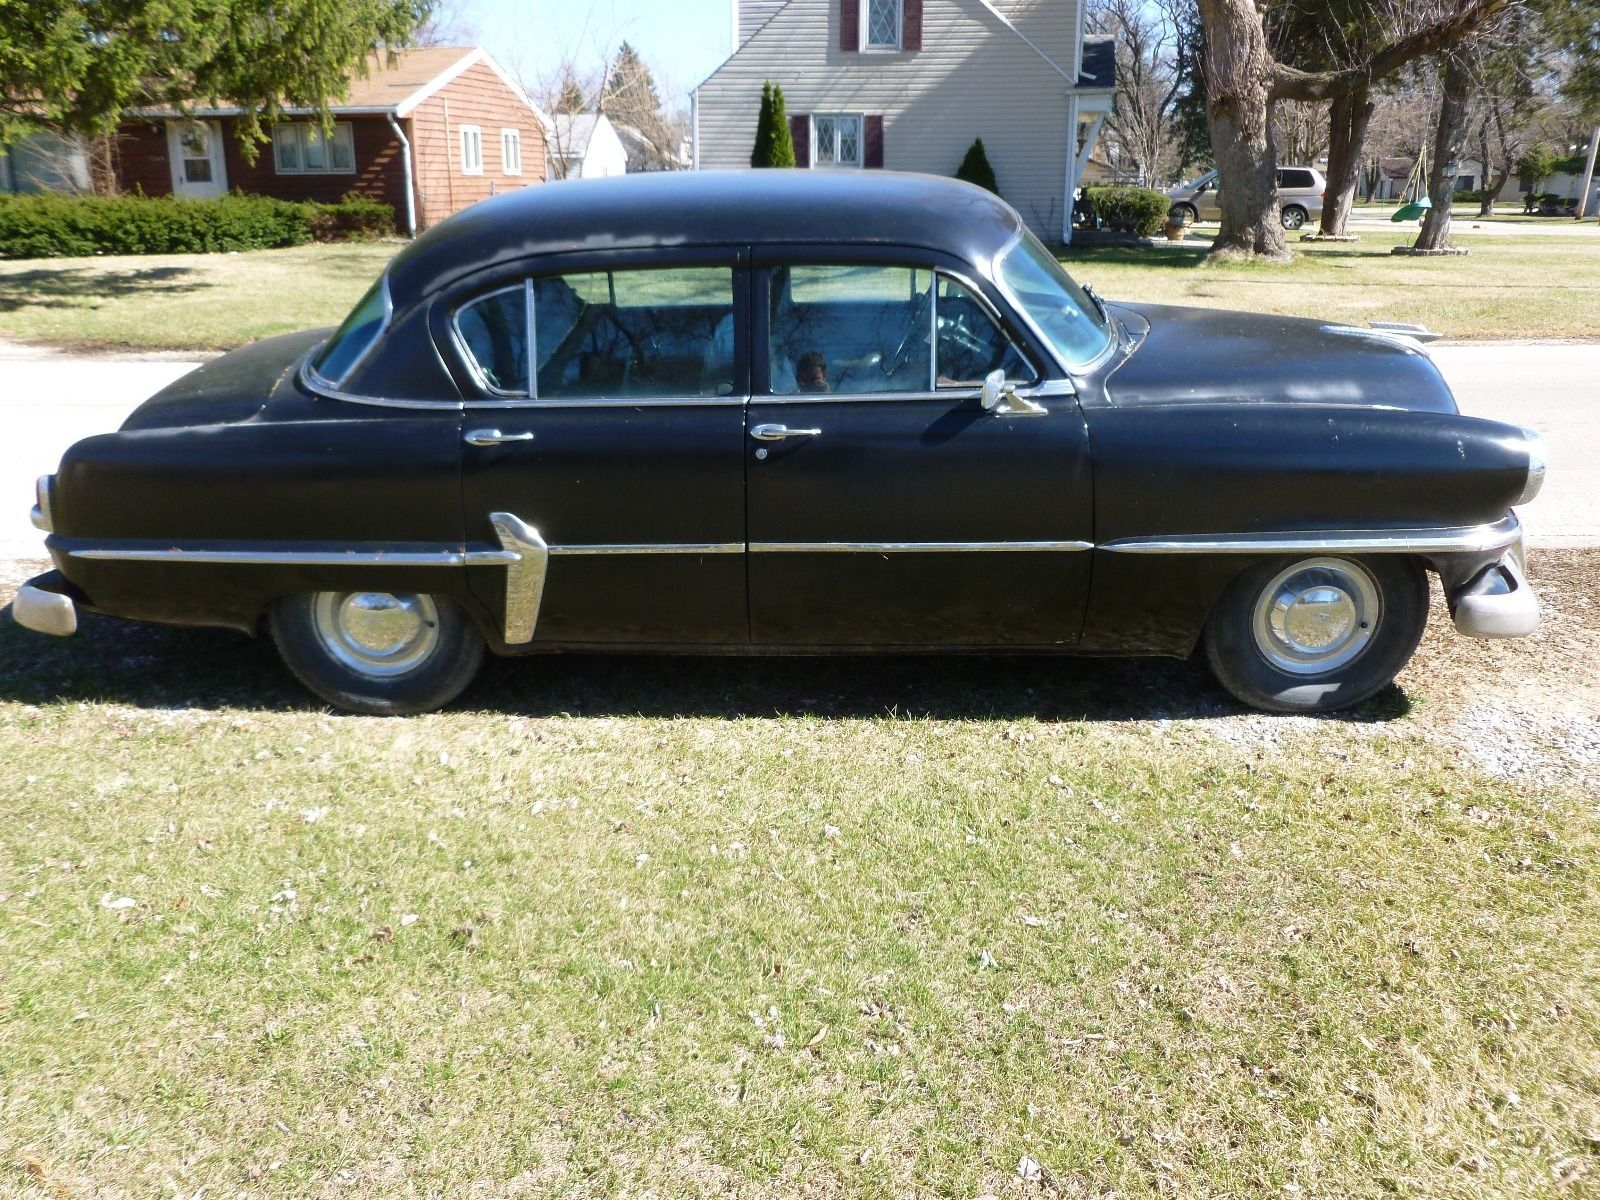 1959 plymouth sport fury interior related keywords - 1955 Plymouth Belvedere Mopar Street Rod Cars Pinterest Plymouth Plymouth Fury And Mopar